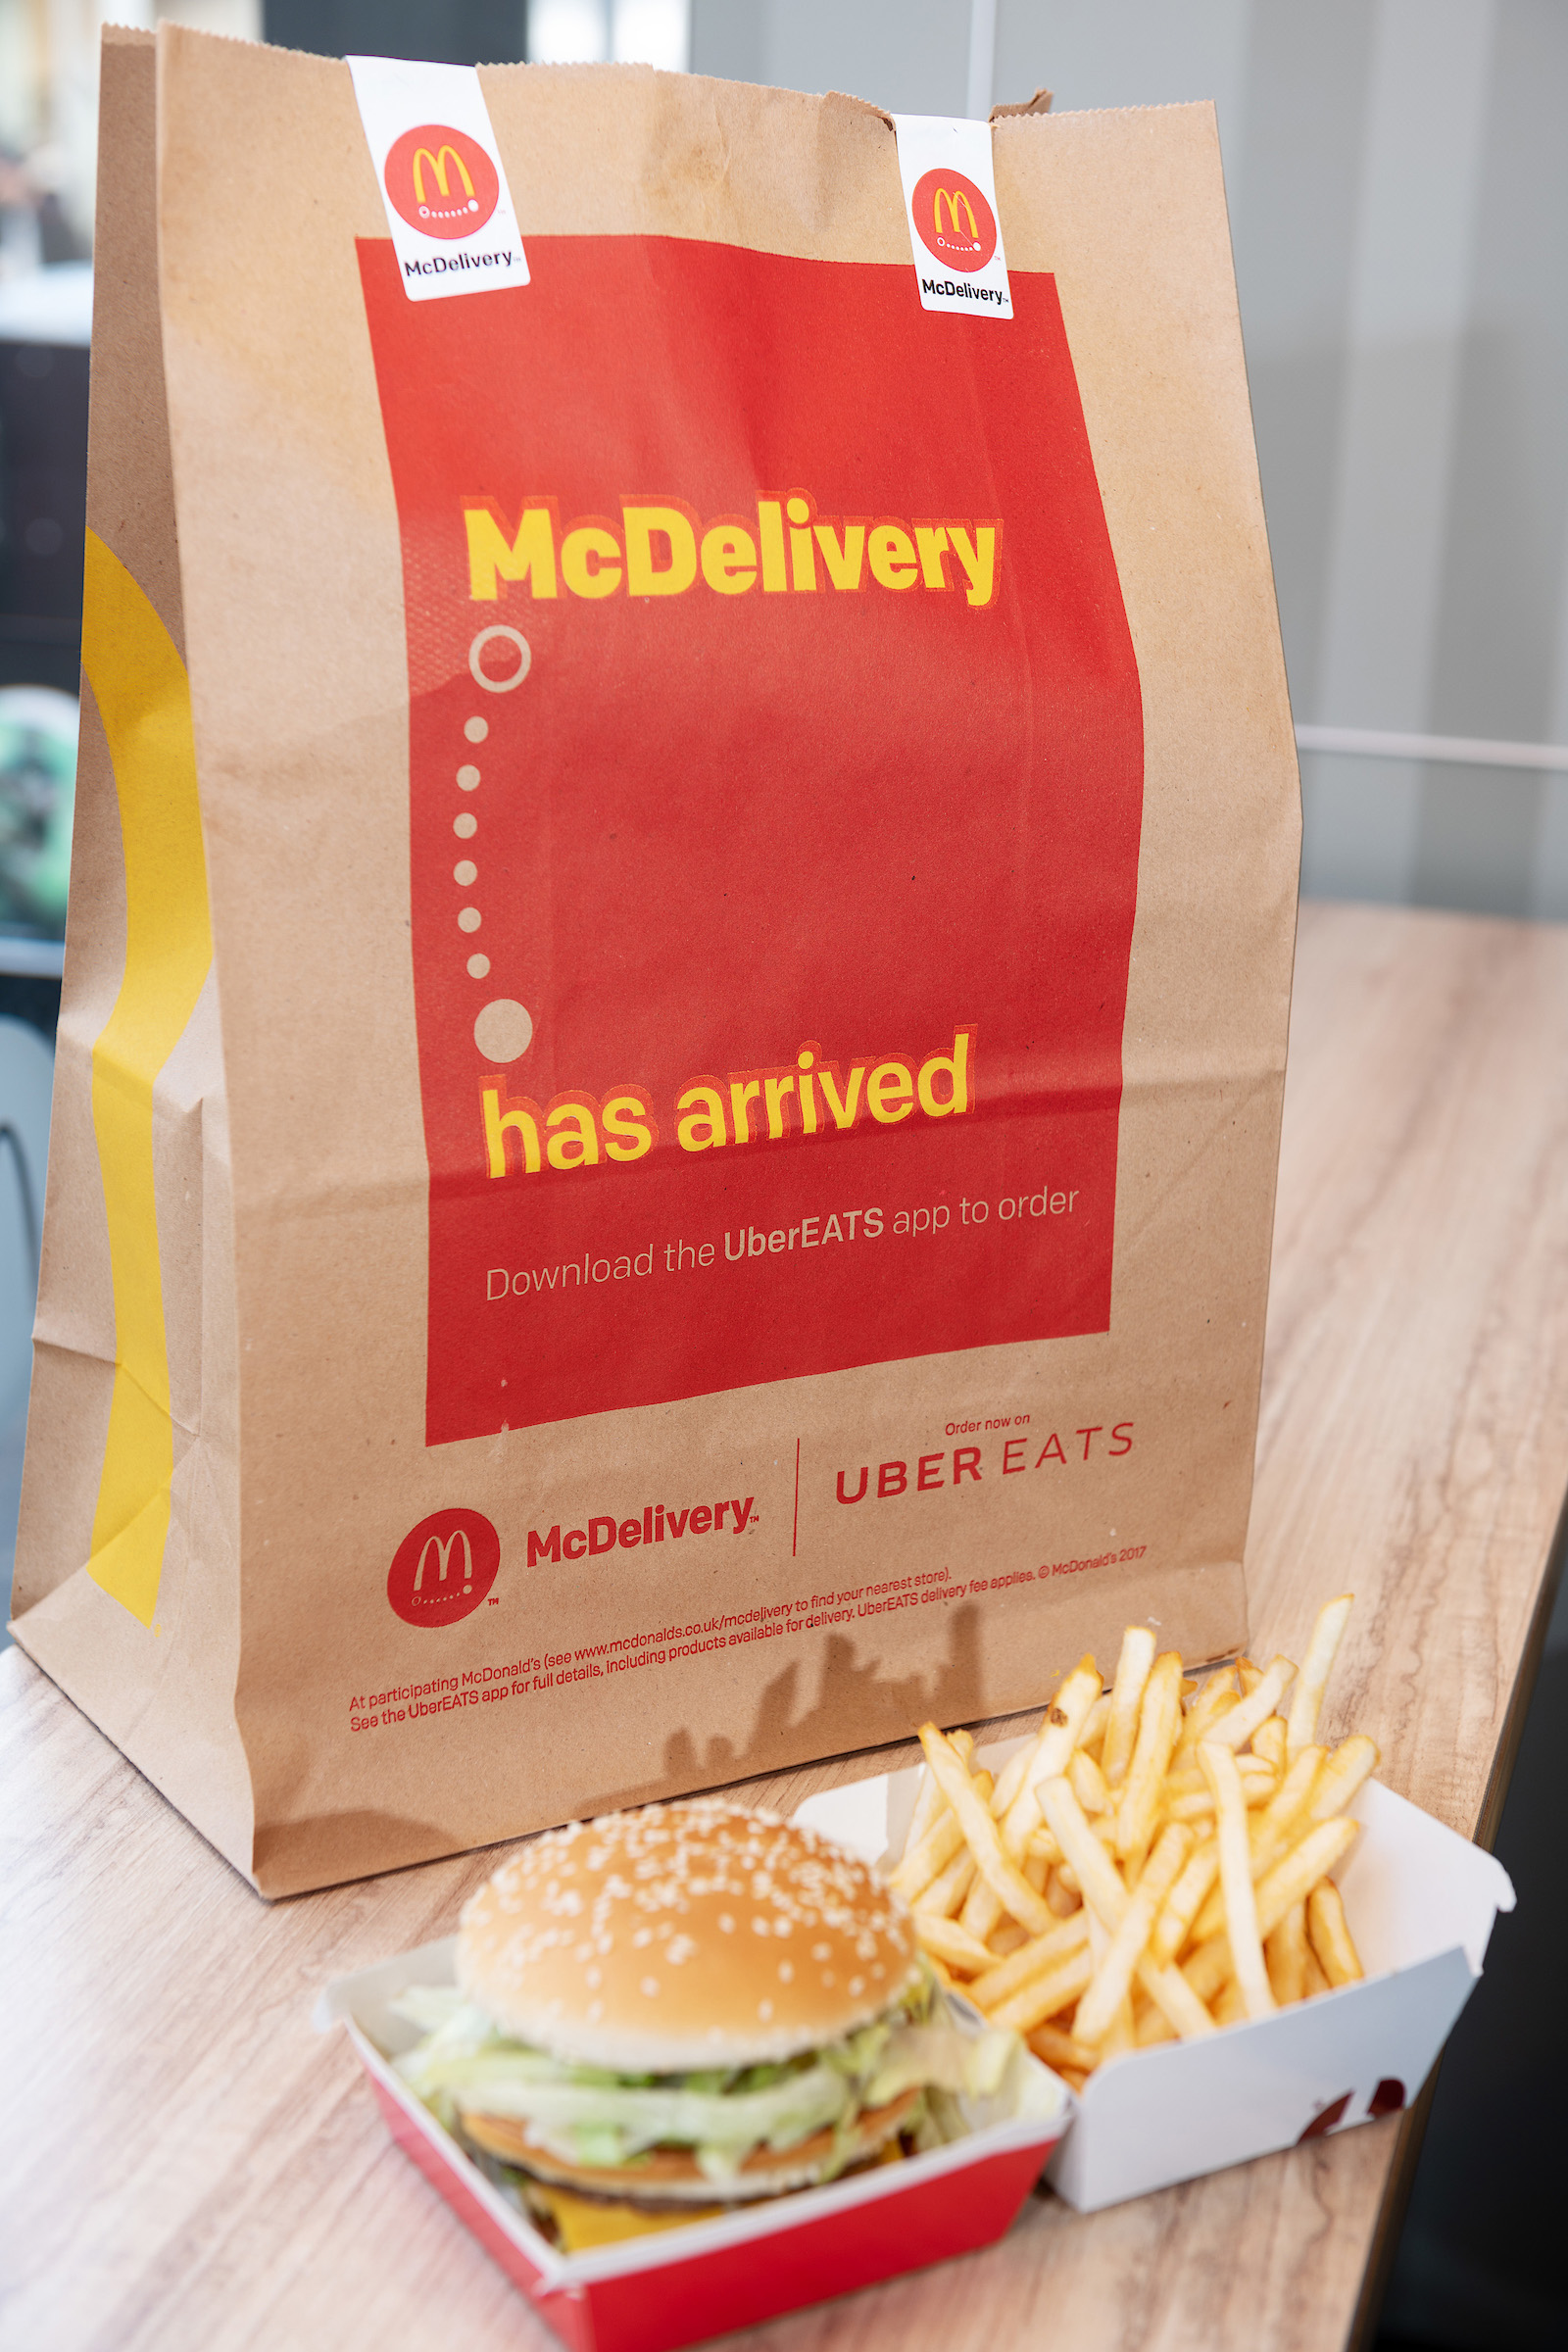 McDonald's has finally launched their delivery service in Ireland   Her.ie